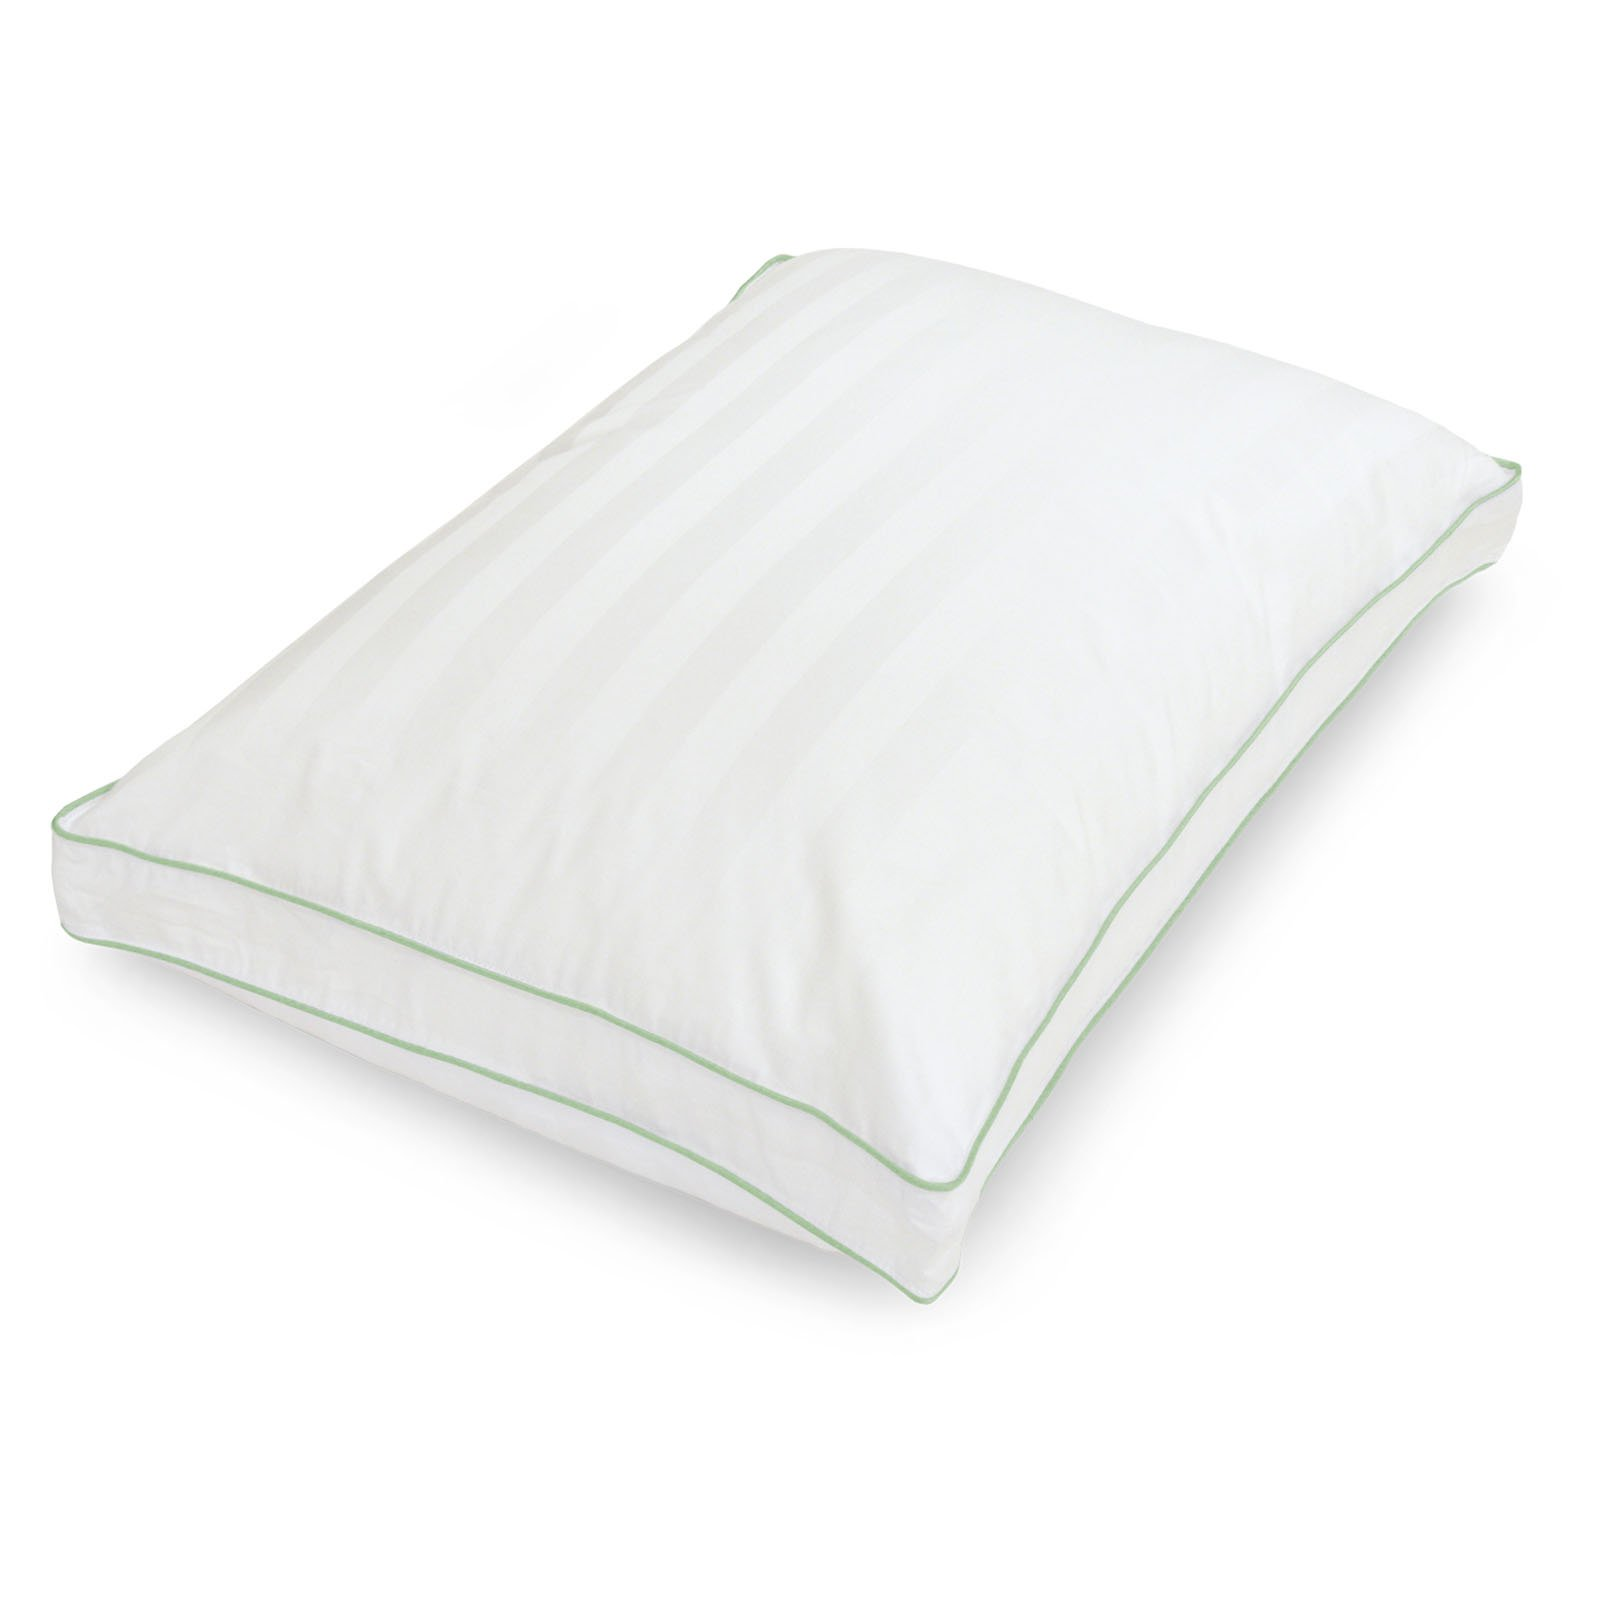 Soft Tex Sensorpedic Reg Dual Comfort Supreme Pillow 20 X 28 In